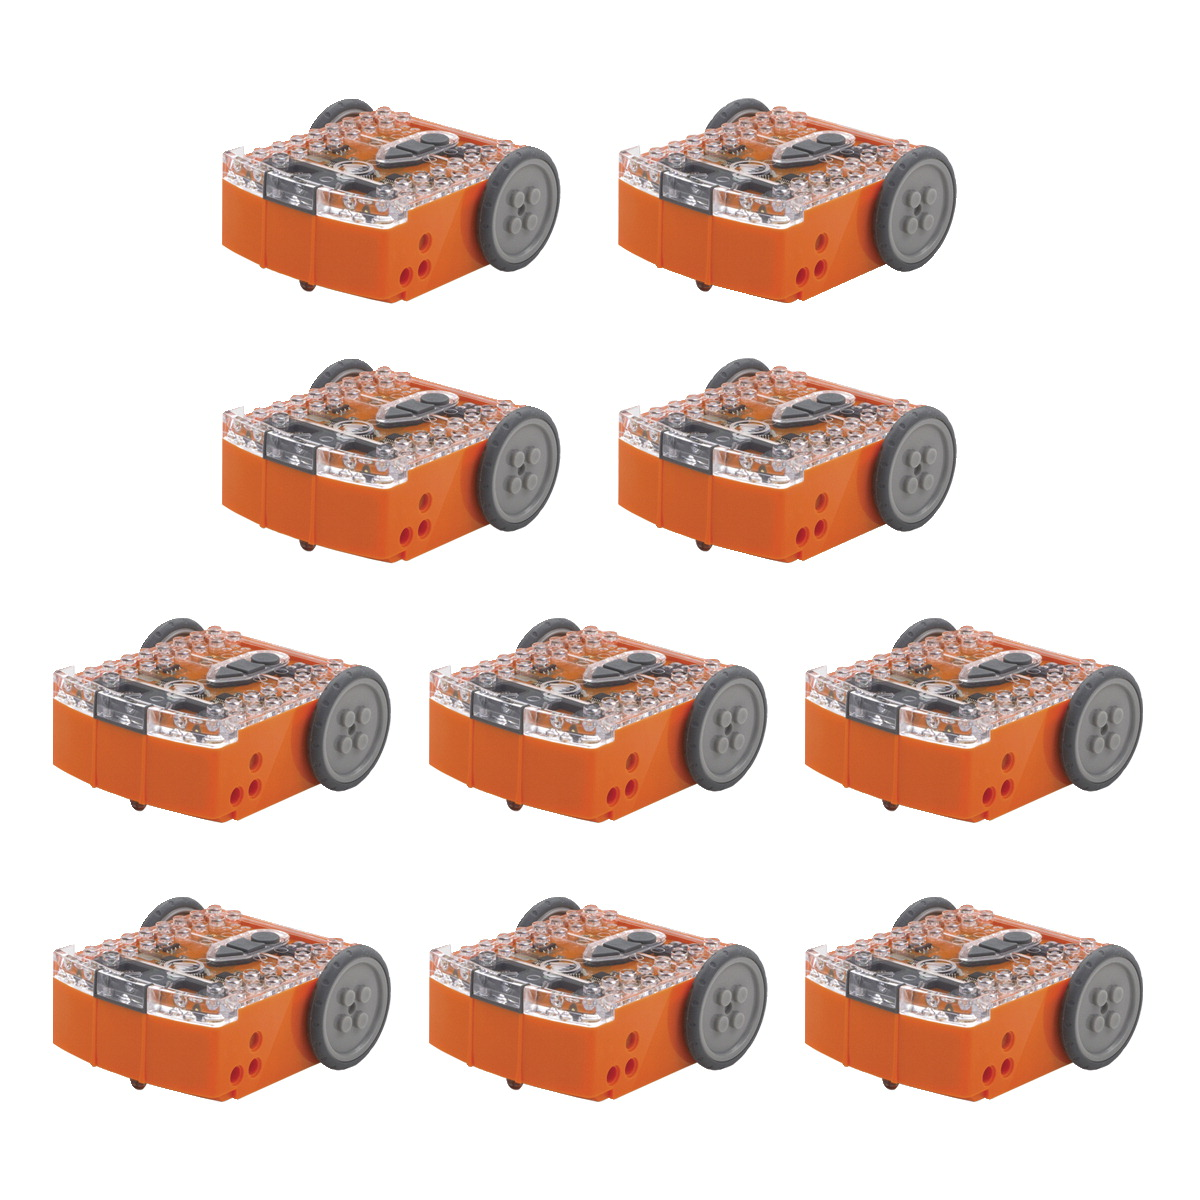 Hamilton Buhl Edison Educational Robot Kit, Pack of 10